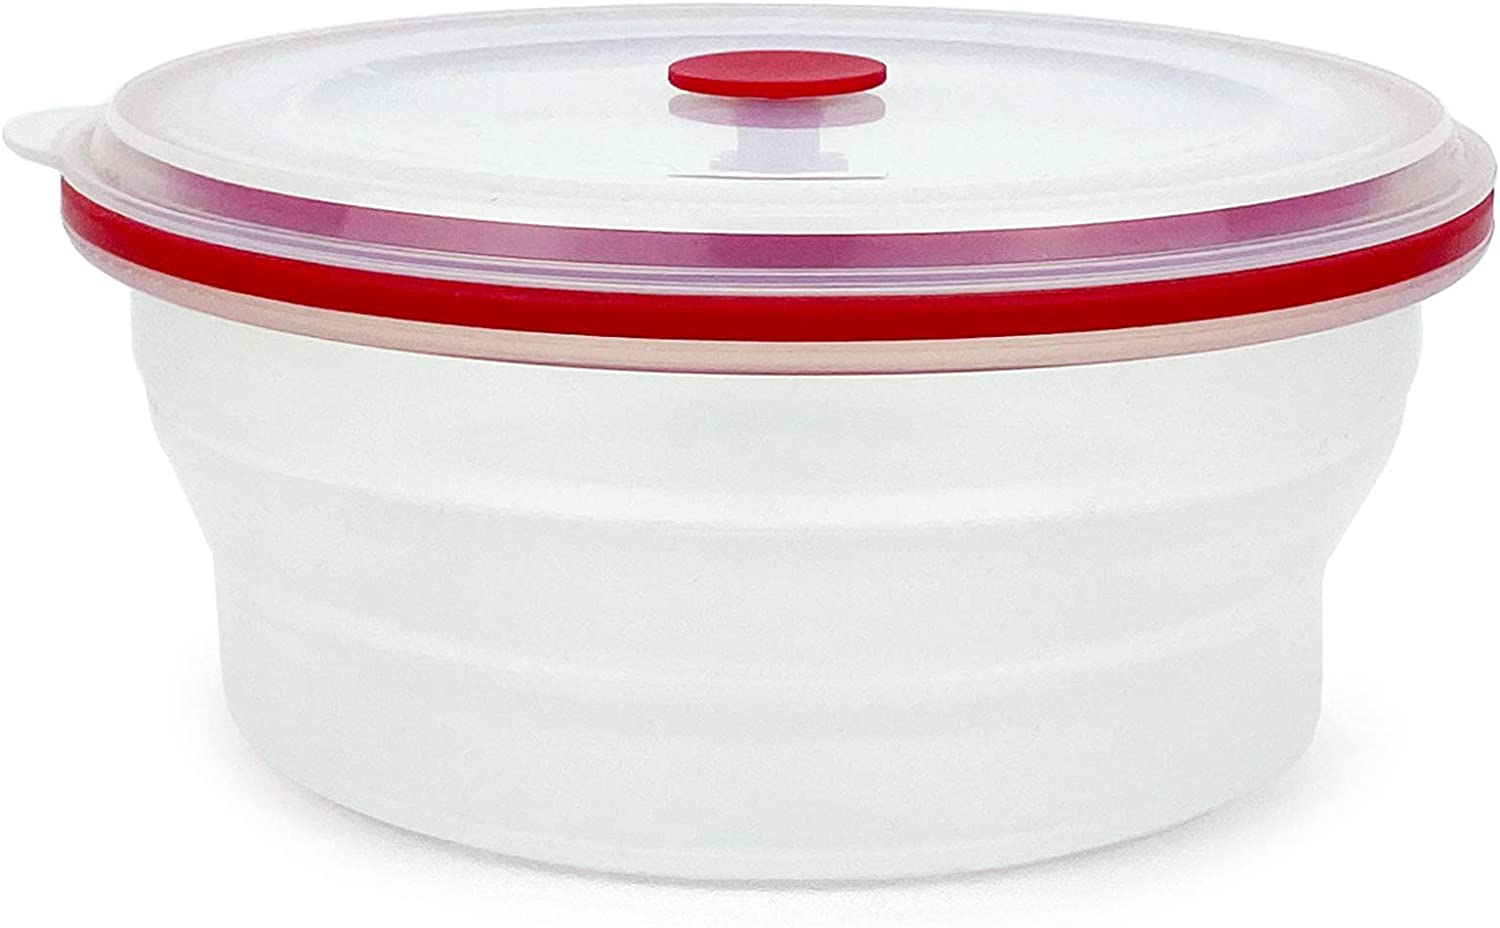 CARTINTS 100% Silicone Collapsible Bowls, Food Grade Reusable Silicone Food Containers with Lid, Silicone Lunch Containers, Oven, Microwave, Freezer Safe, 900ml, Round